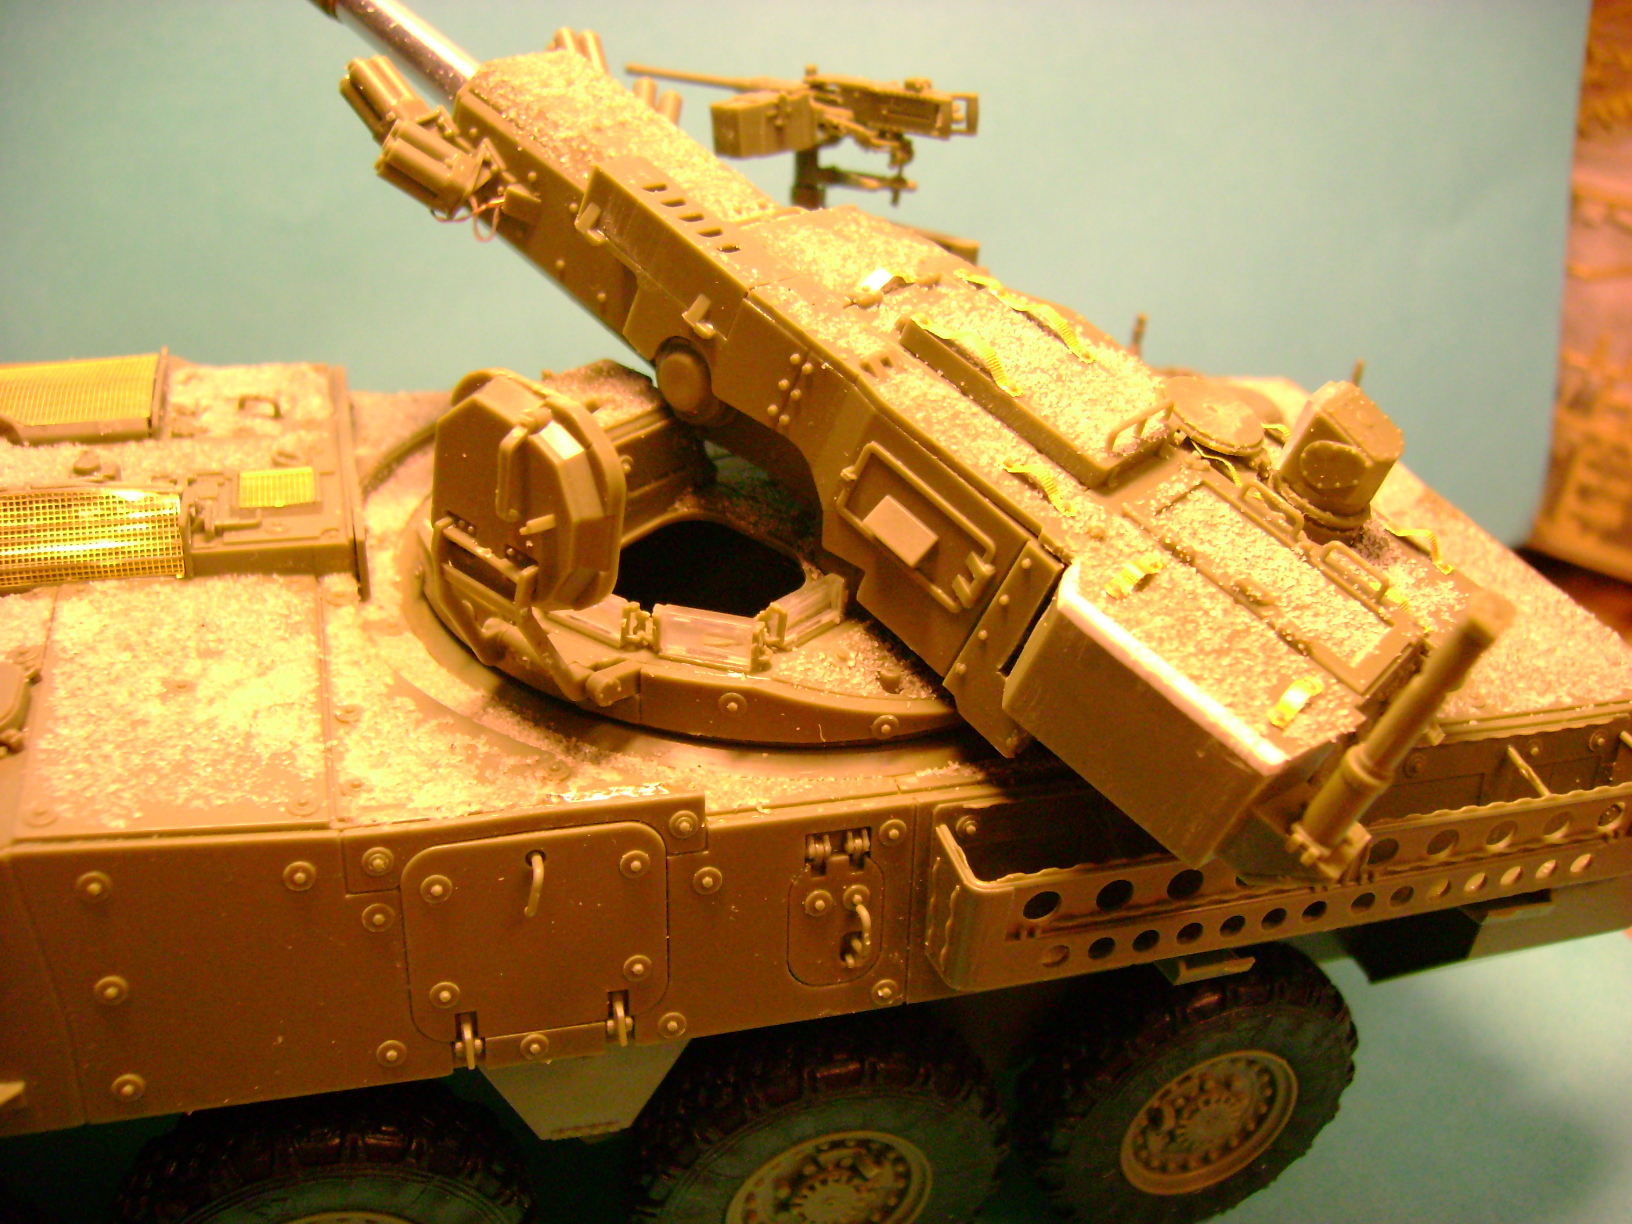 Stryker M1128 MGS Terminé.... - Page 2 Dsc00581qh